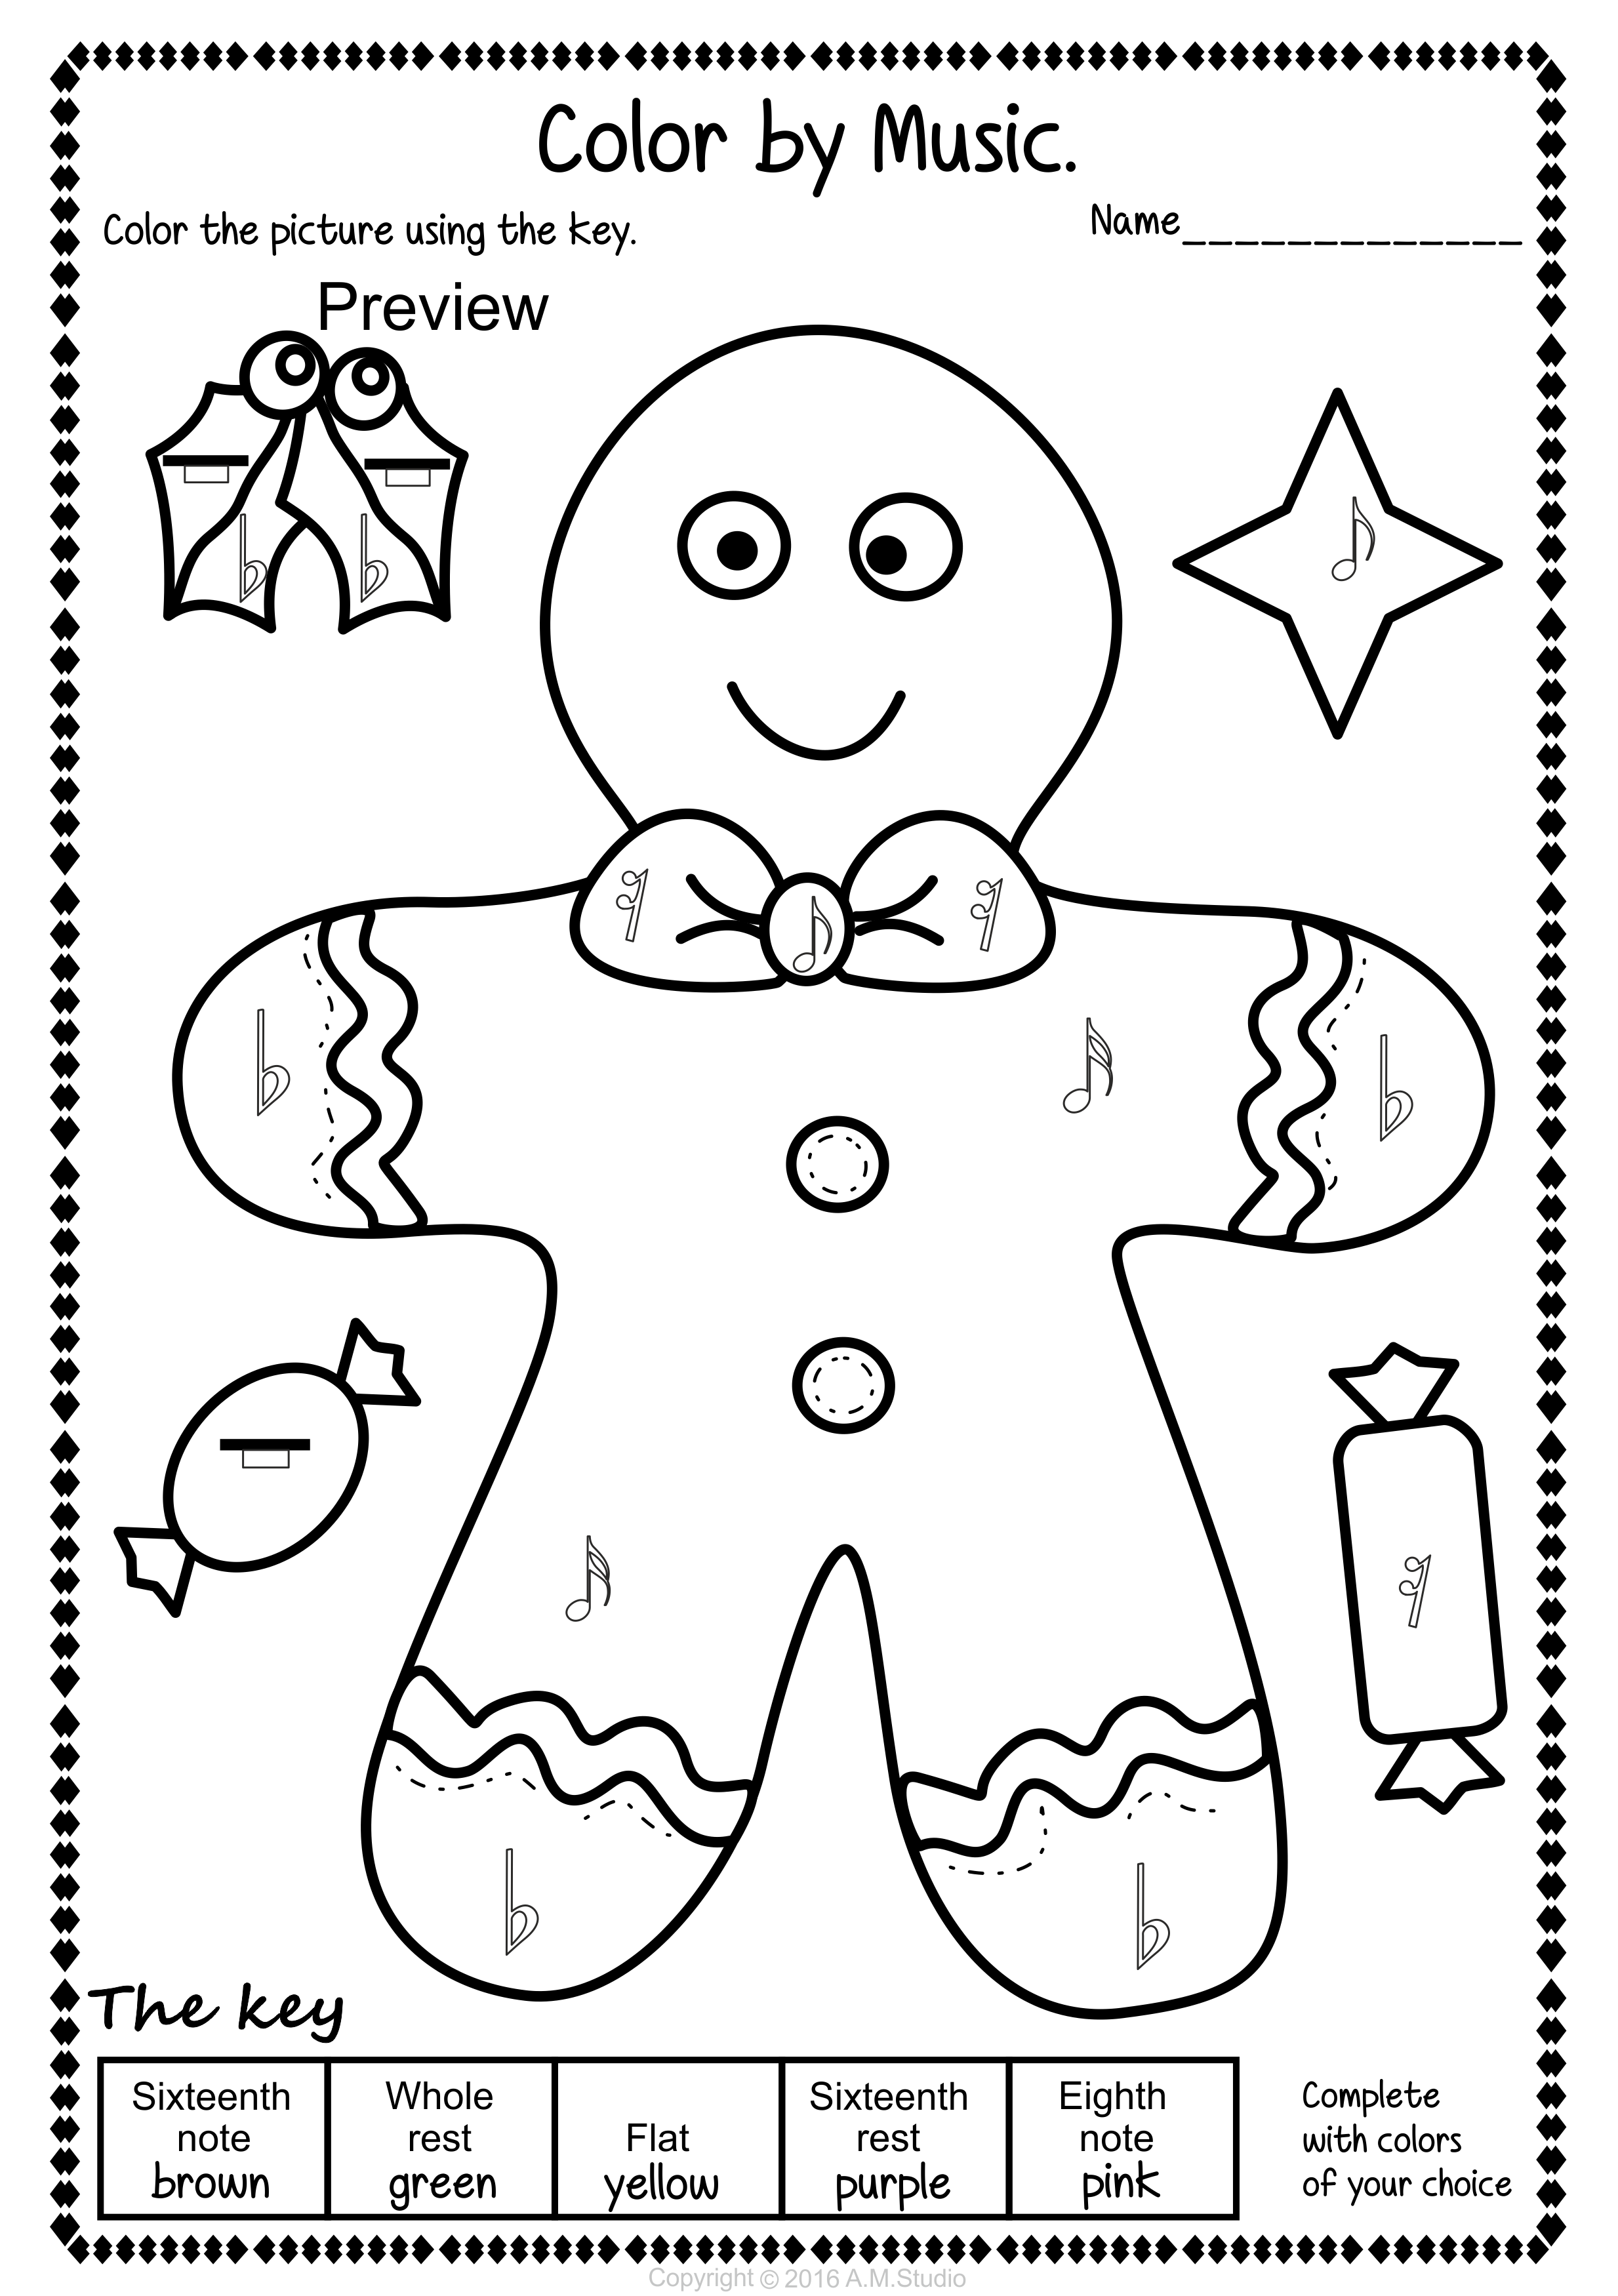 Simple And Fun Christmas Music Coloring Activity For Kids This Set Contains 14 Designs In 3 Different Formats 42 Pages Total